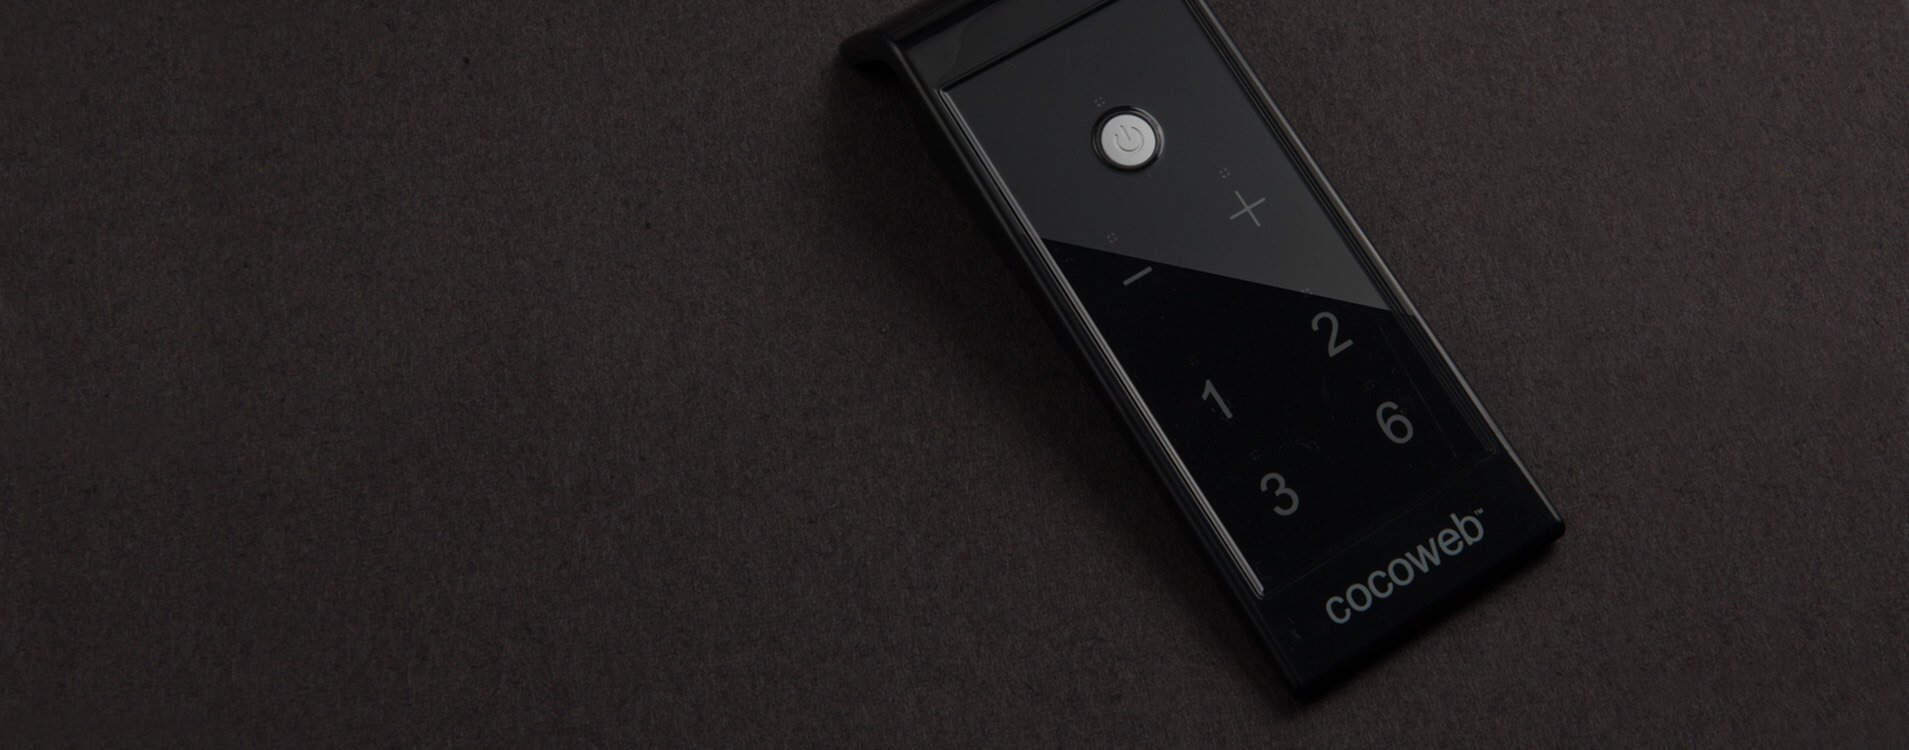 Customizable Classic LED Picture Light remote control